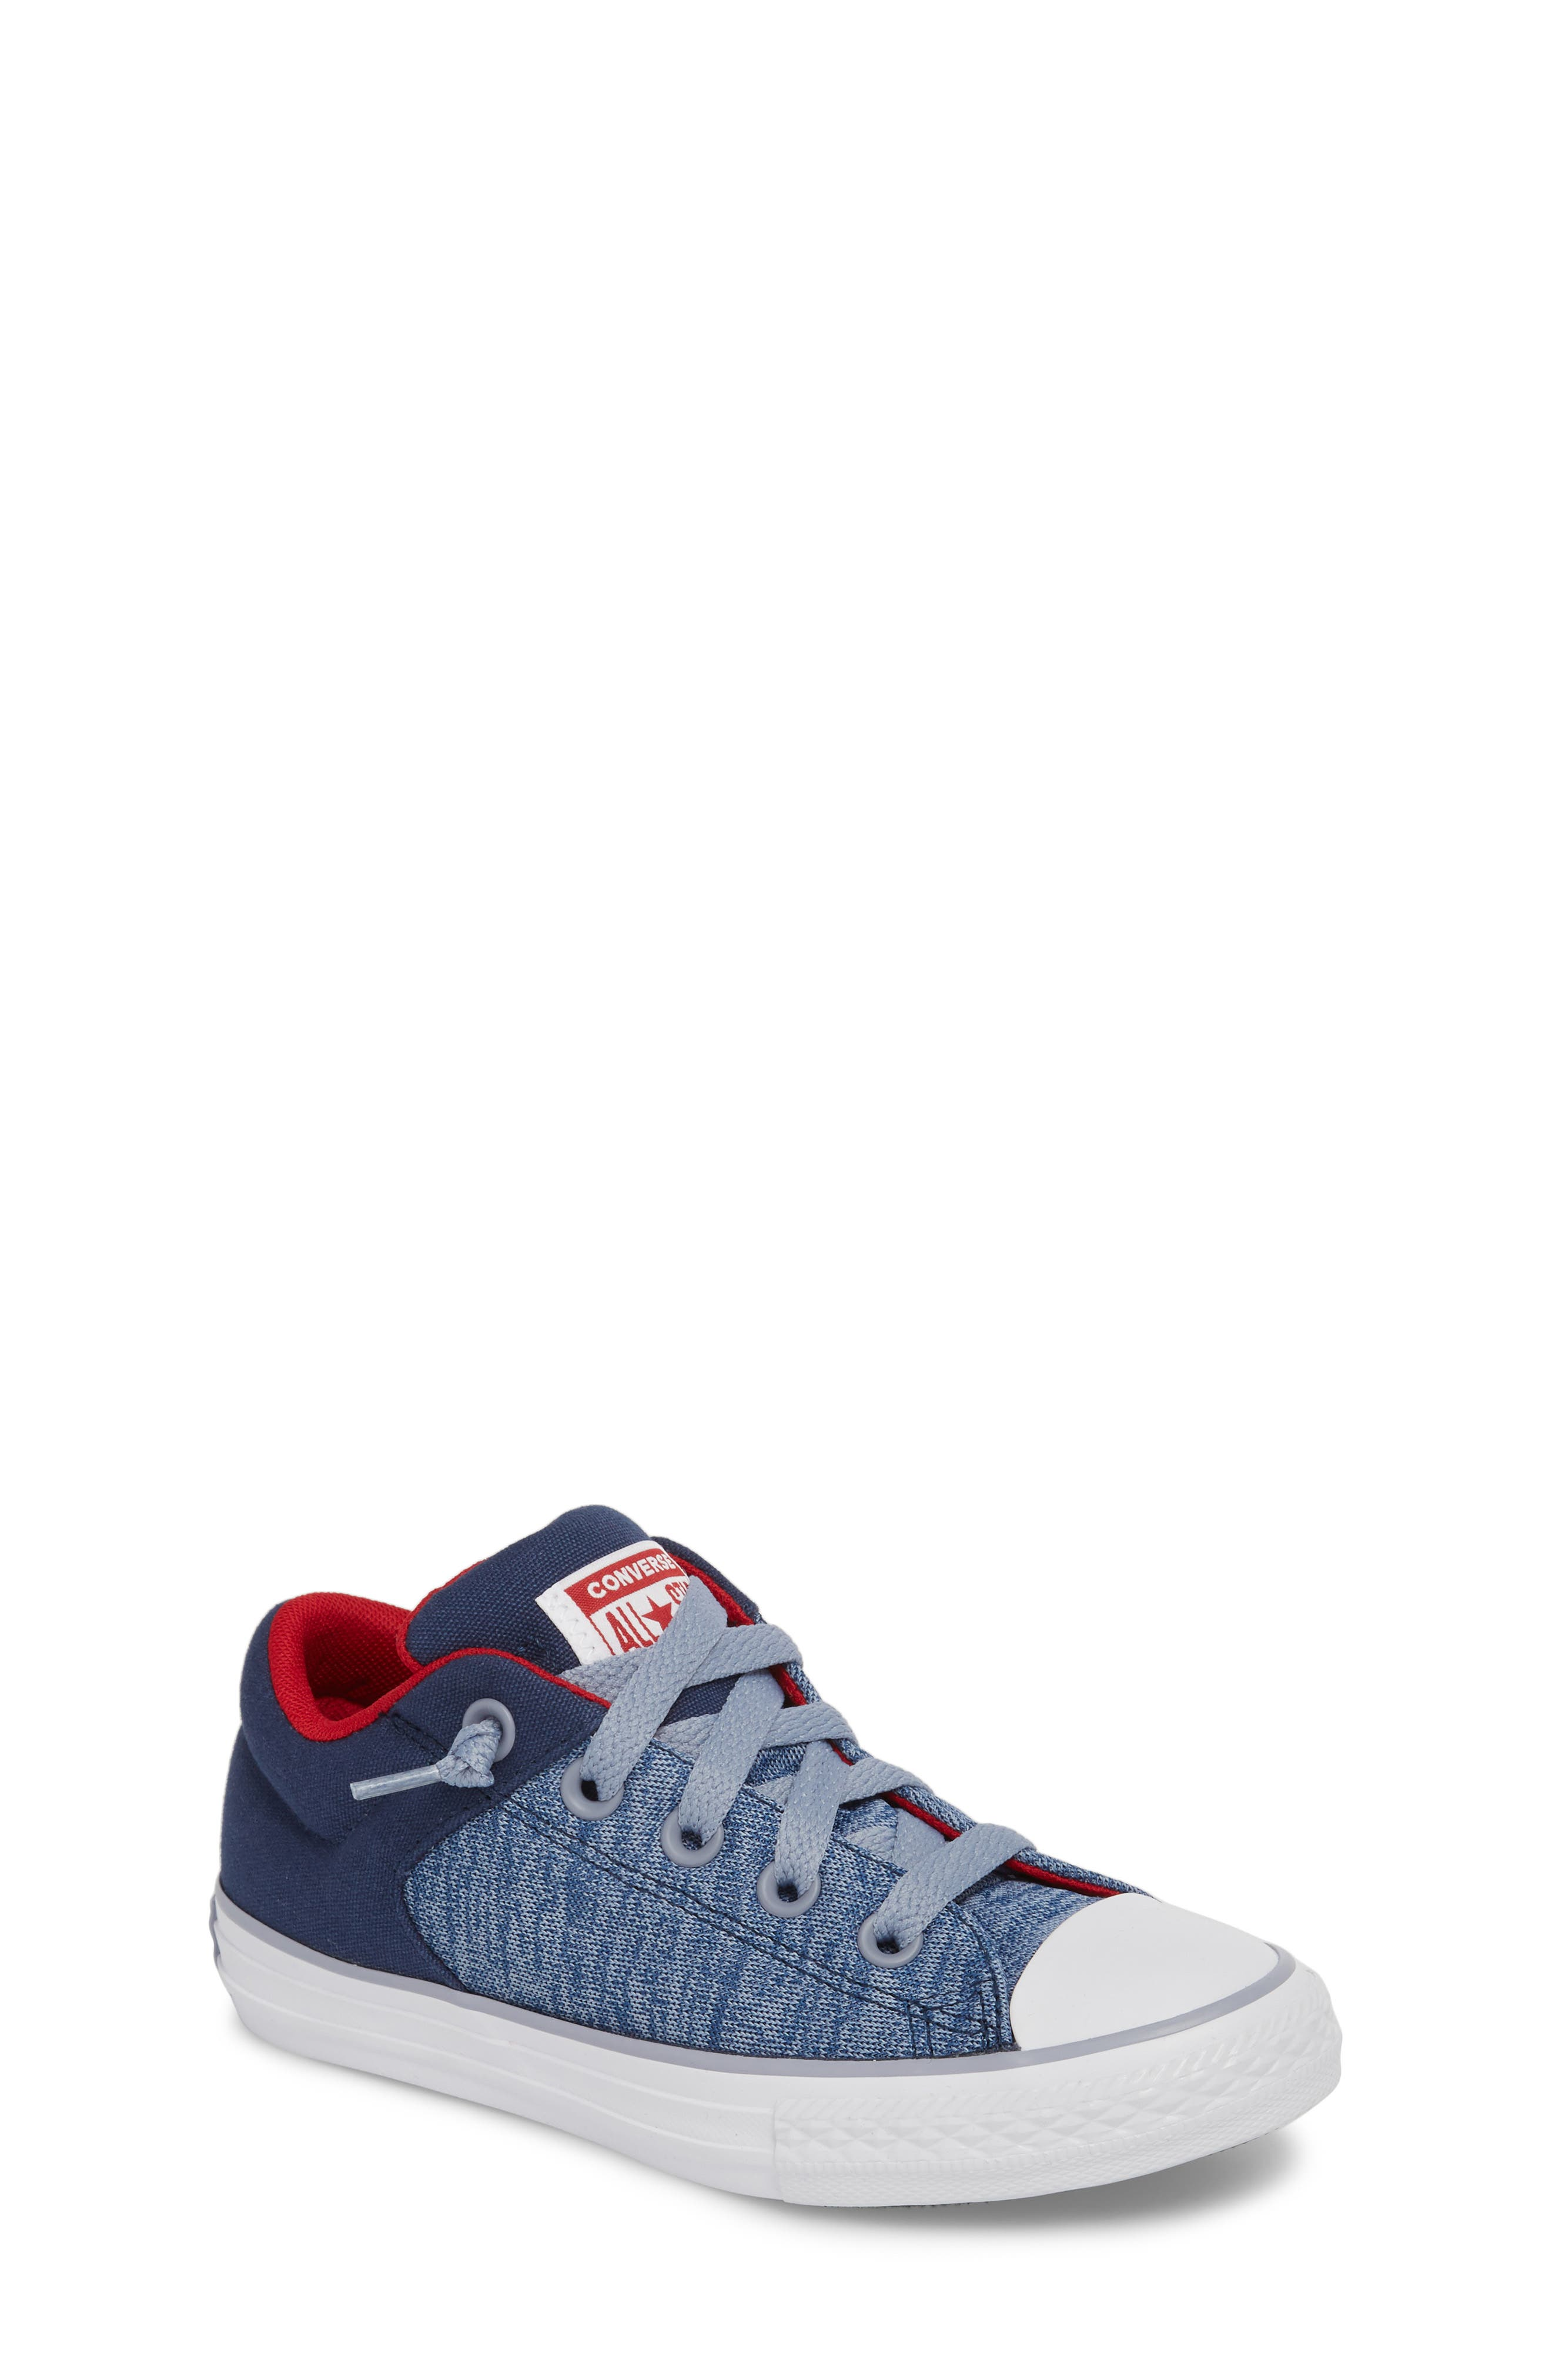 One Star Heather Street Sneaker,                         Main,                         color, Navy